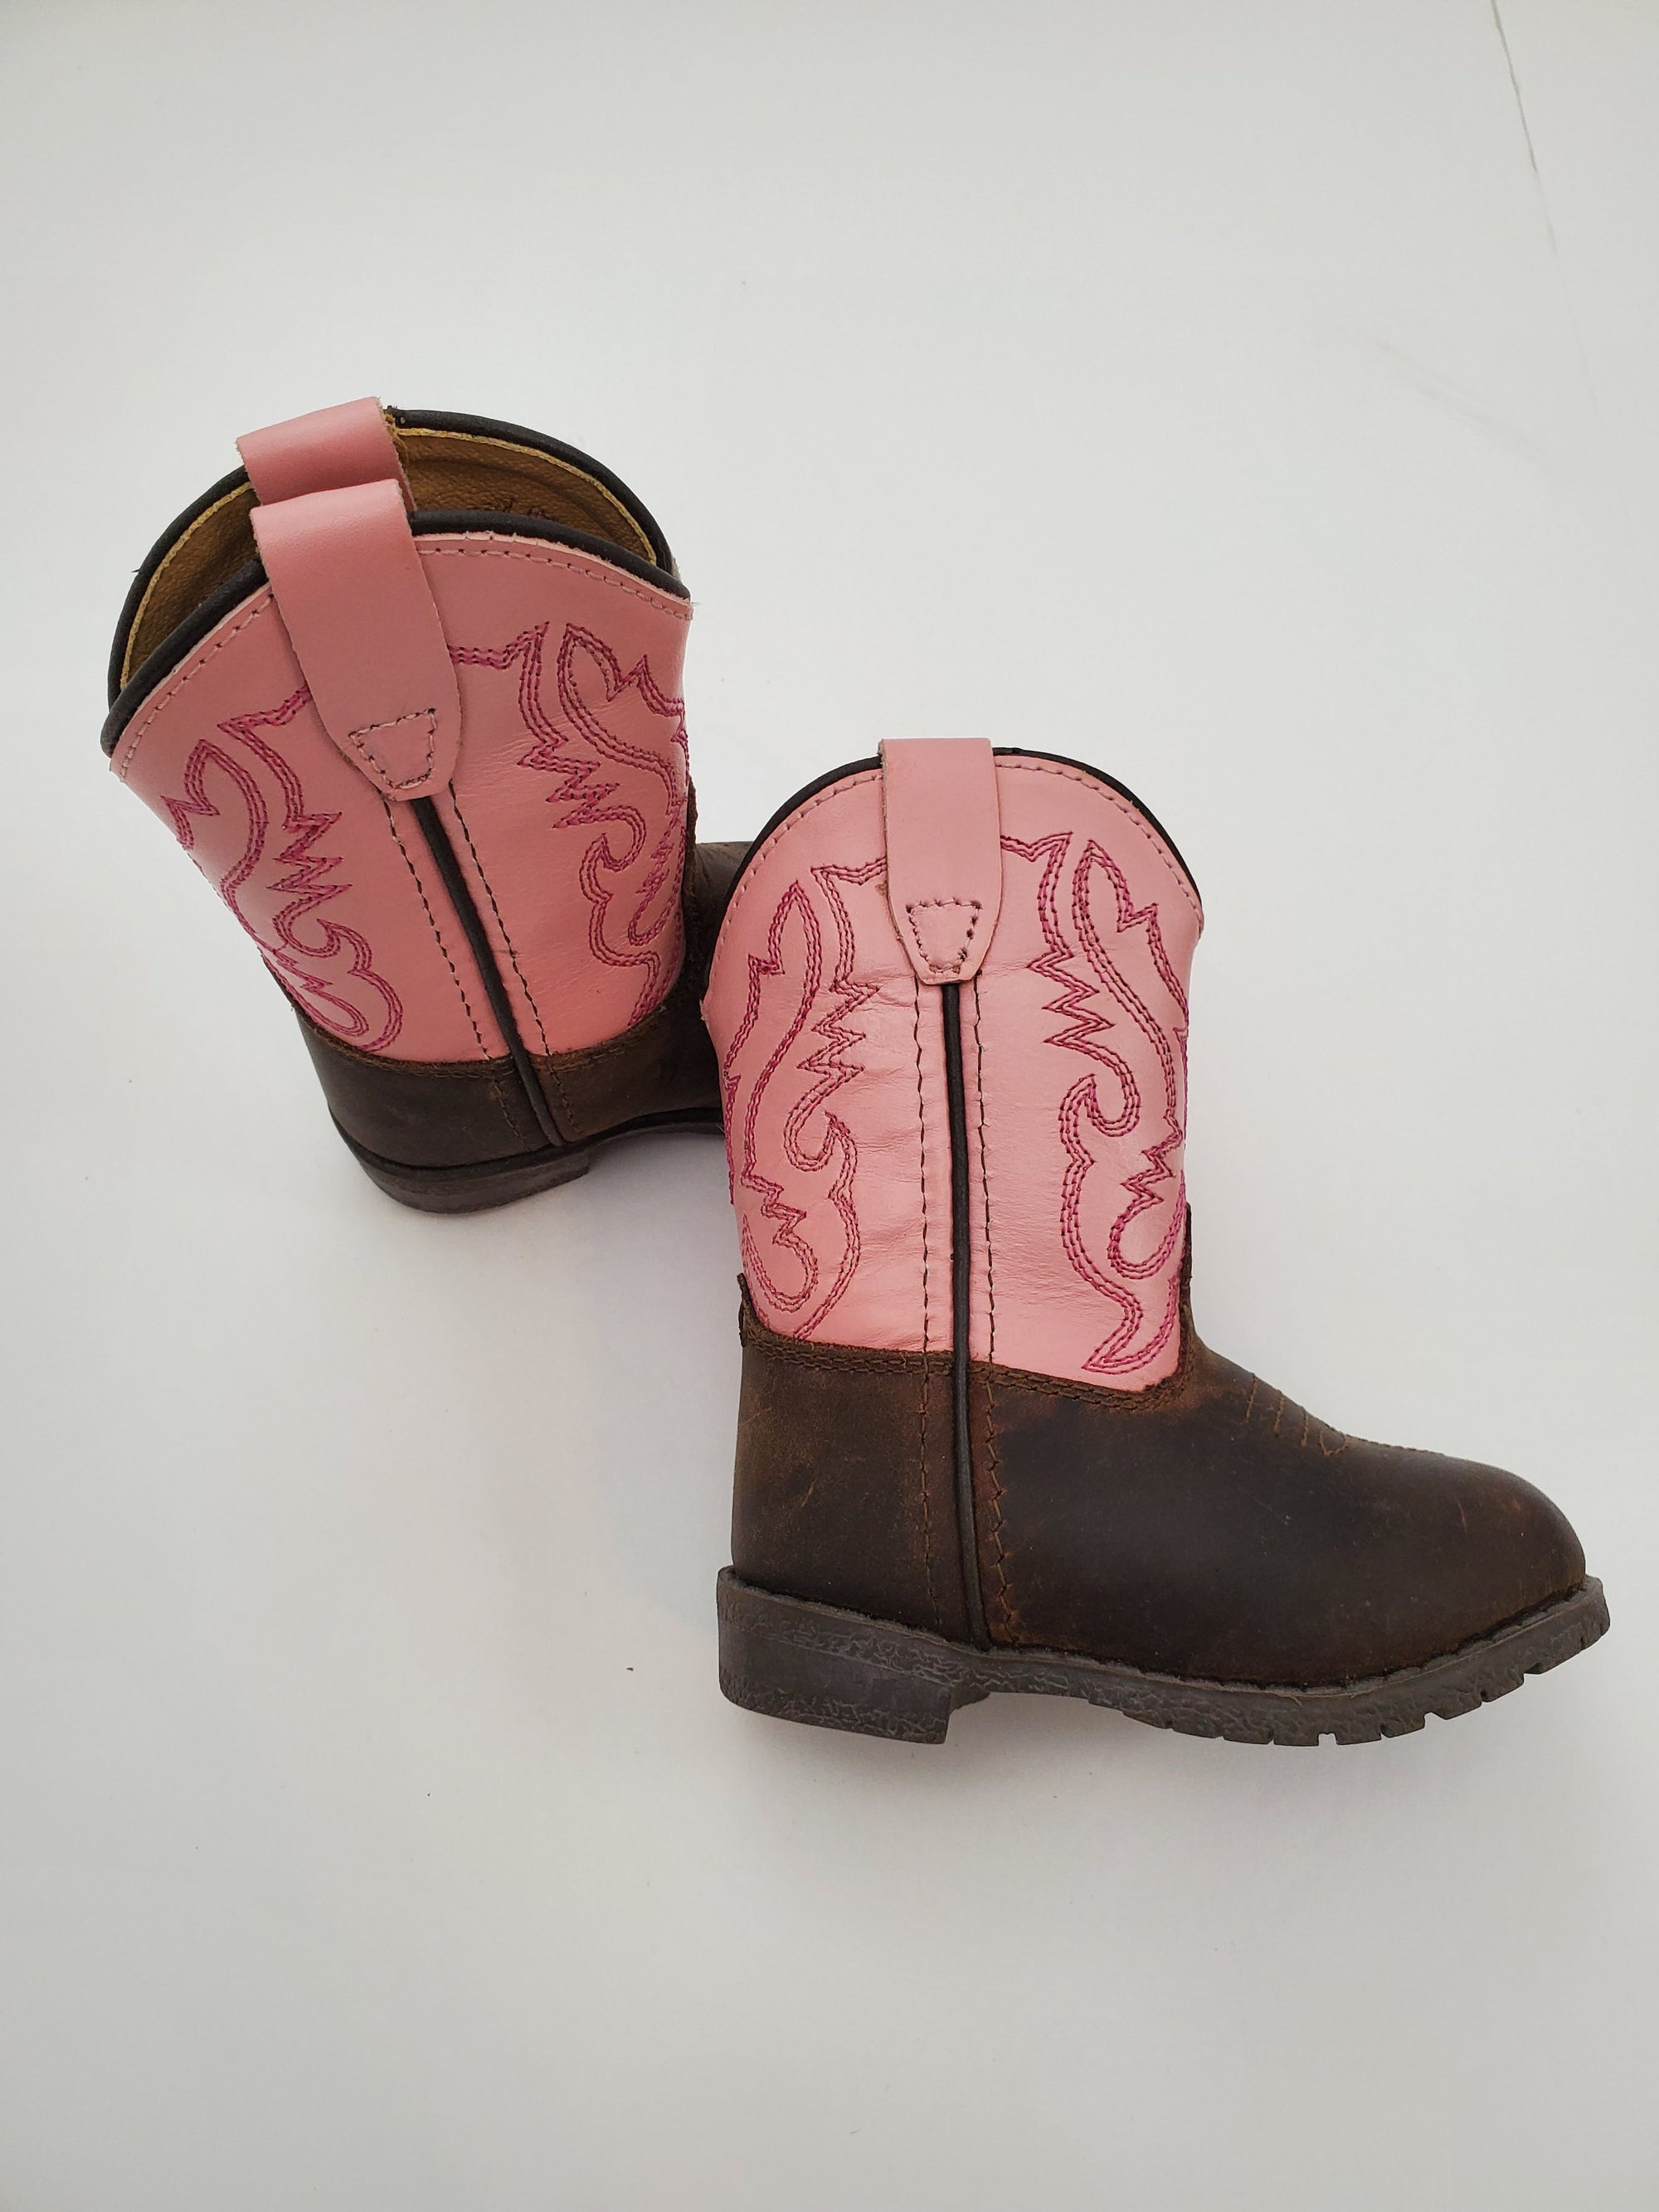 C4 Smoky Cowgirl Boots - Pink & Brown